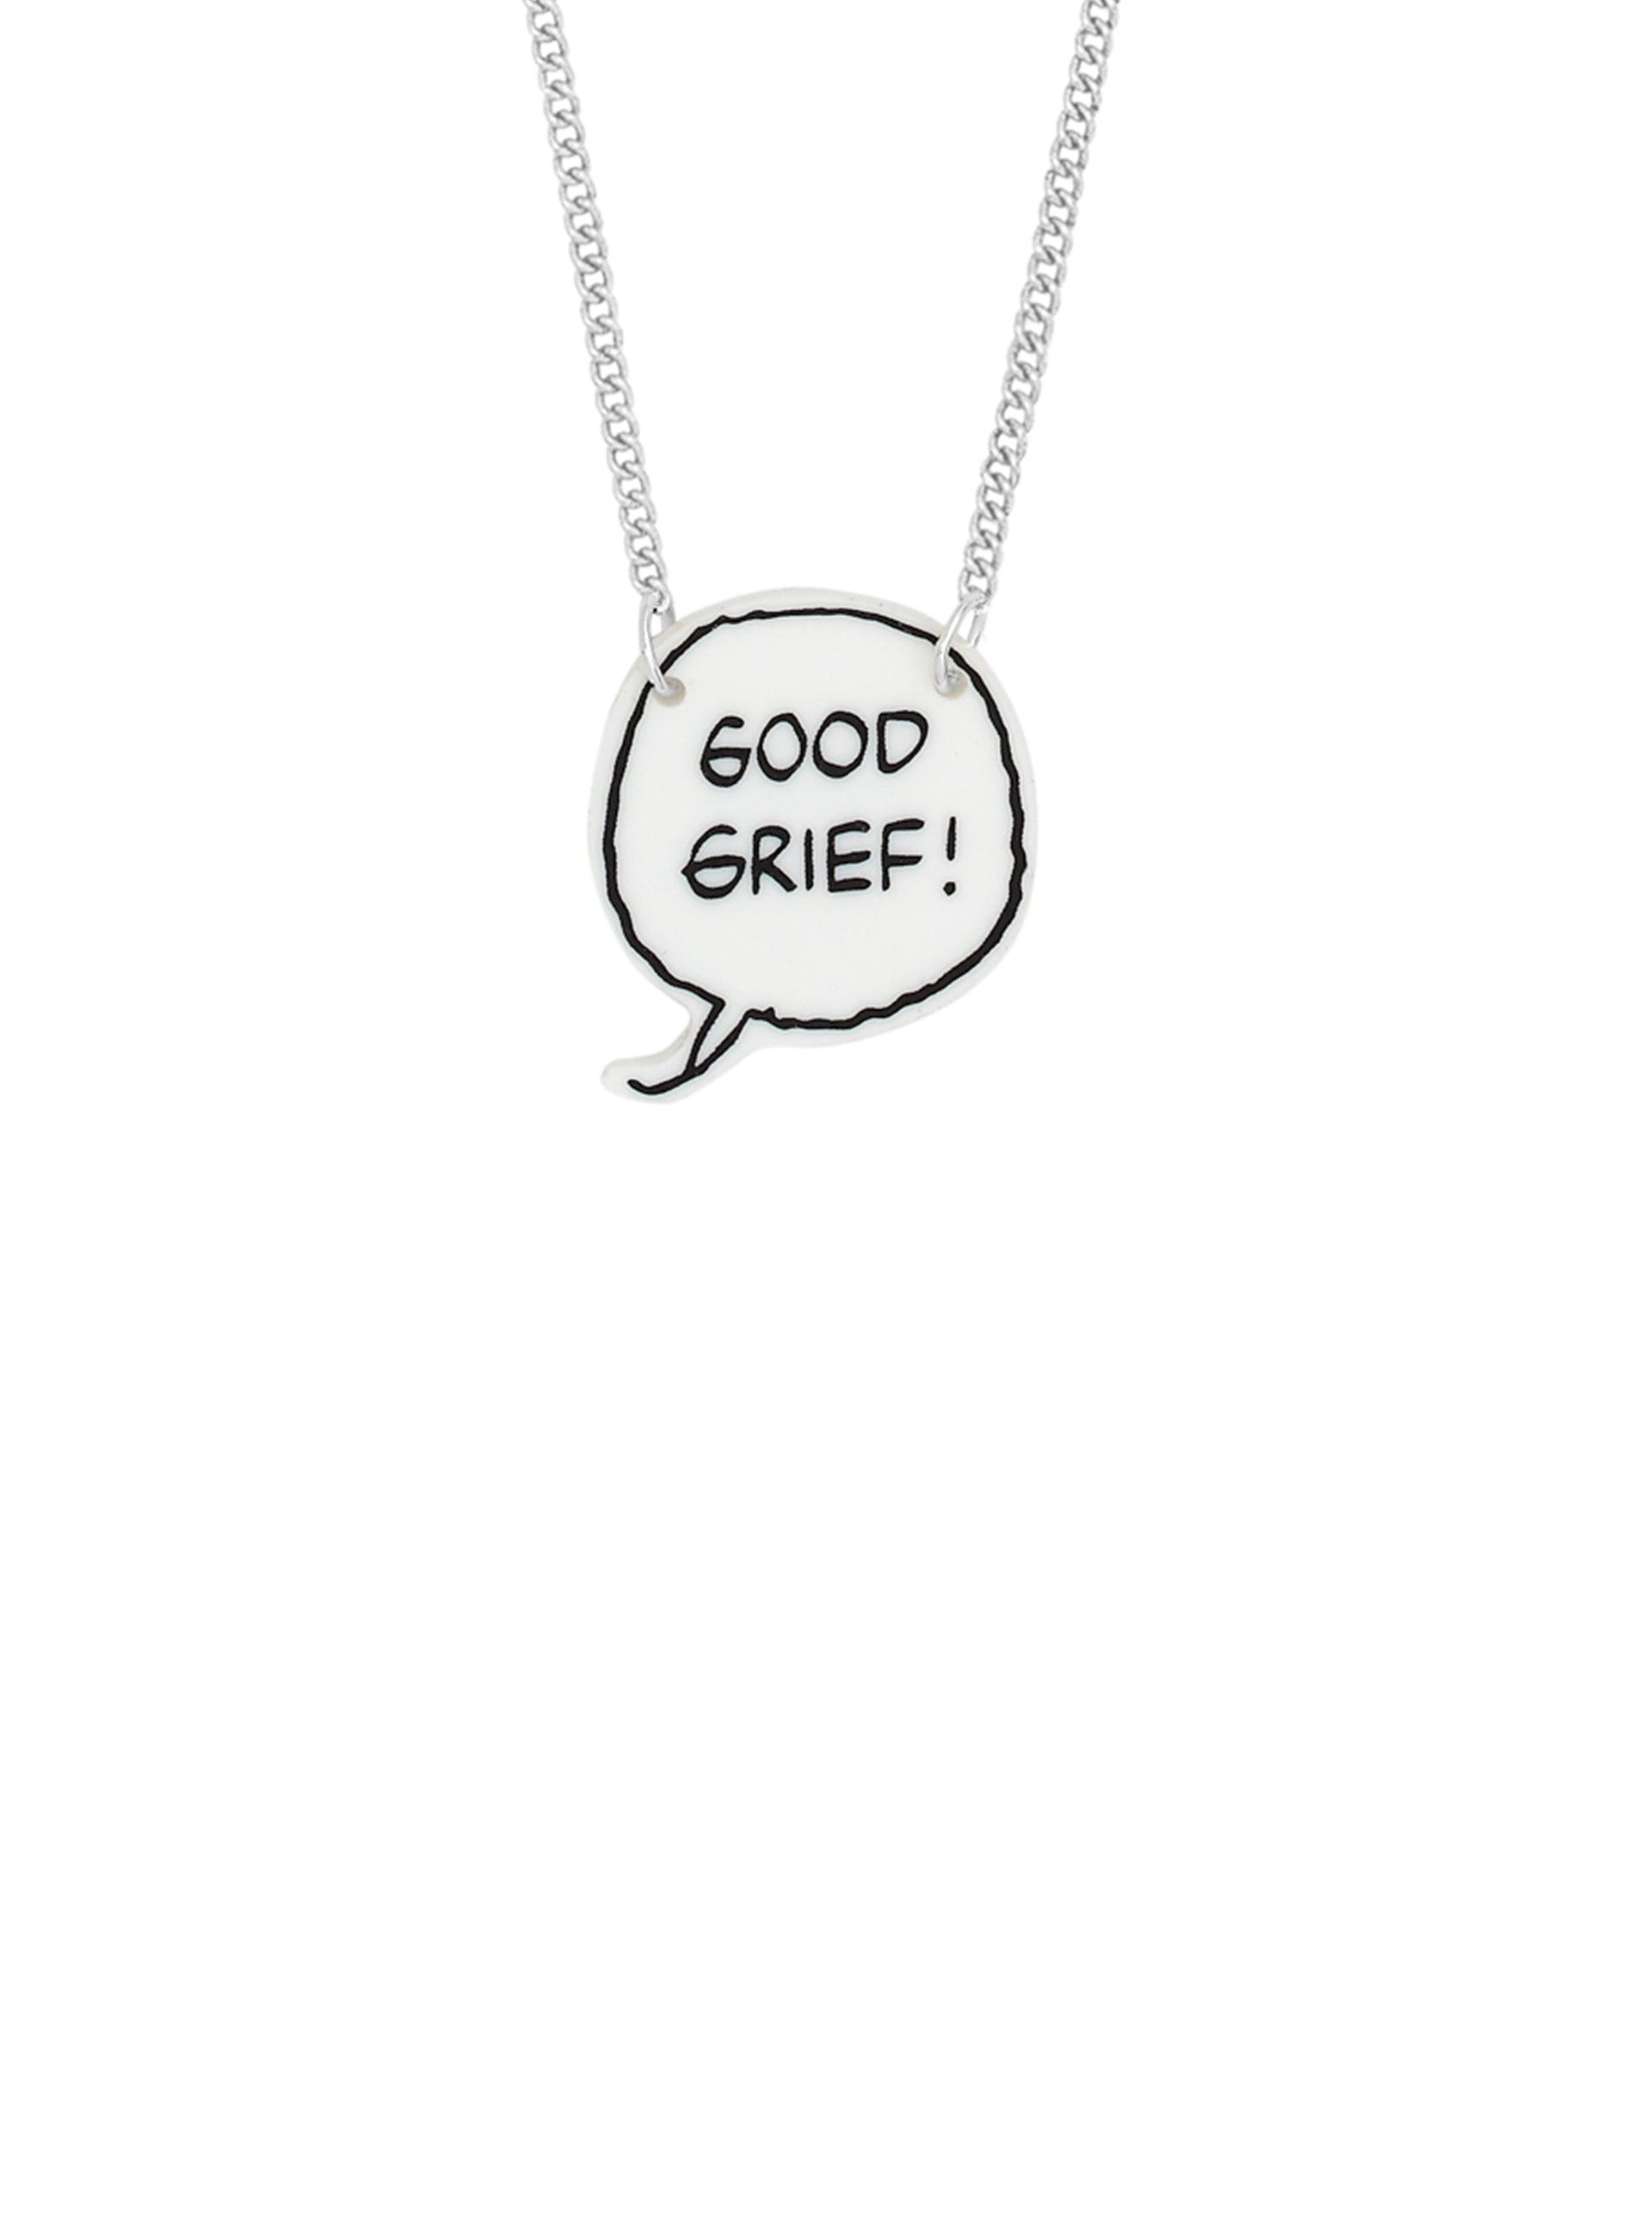 Good Grief, Charlie Brown! Necklace